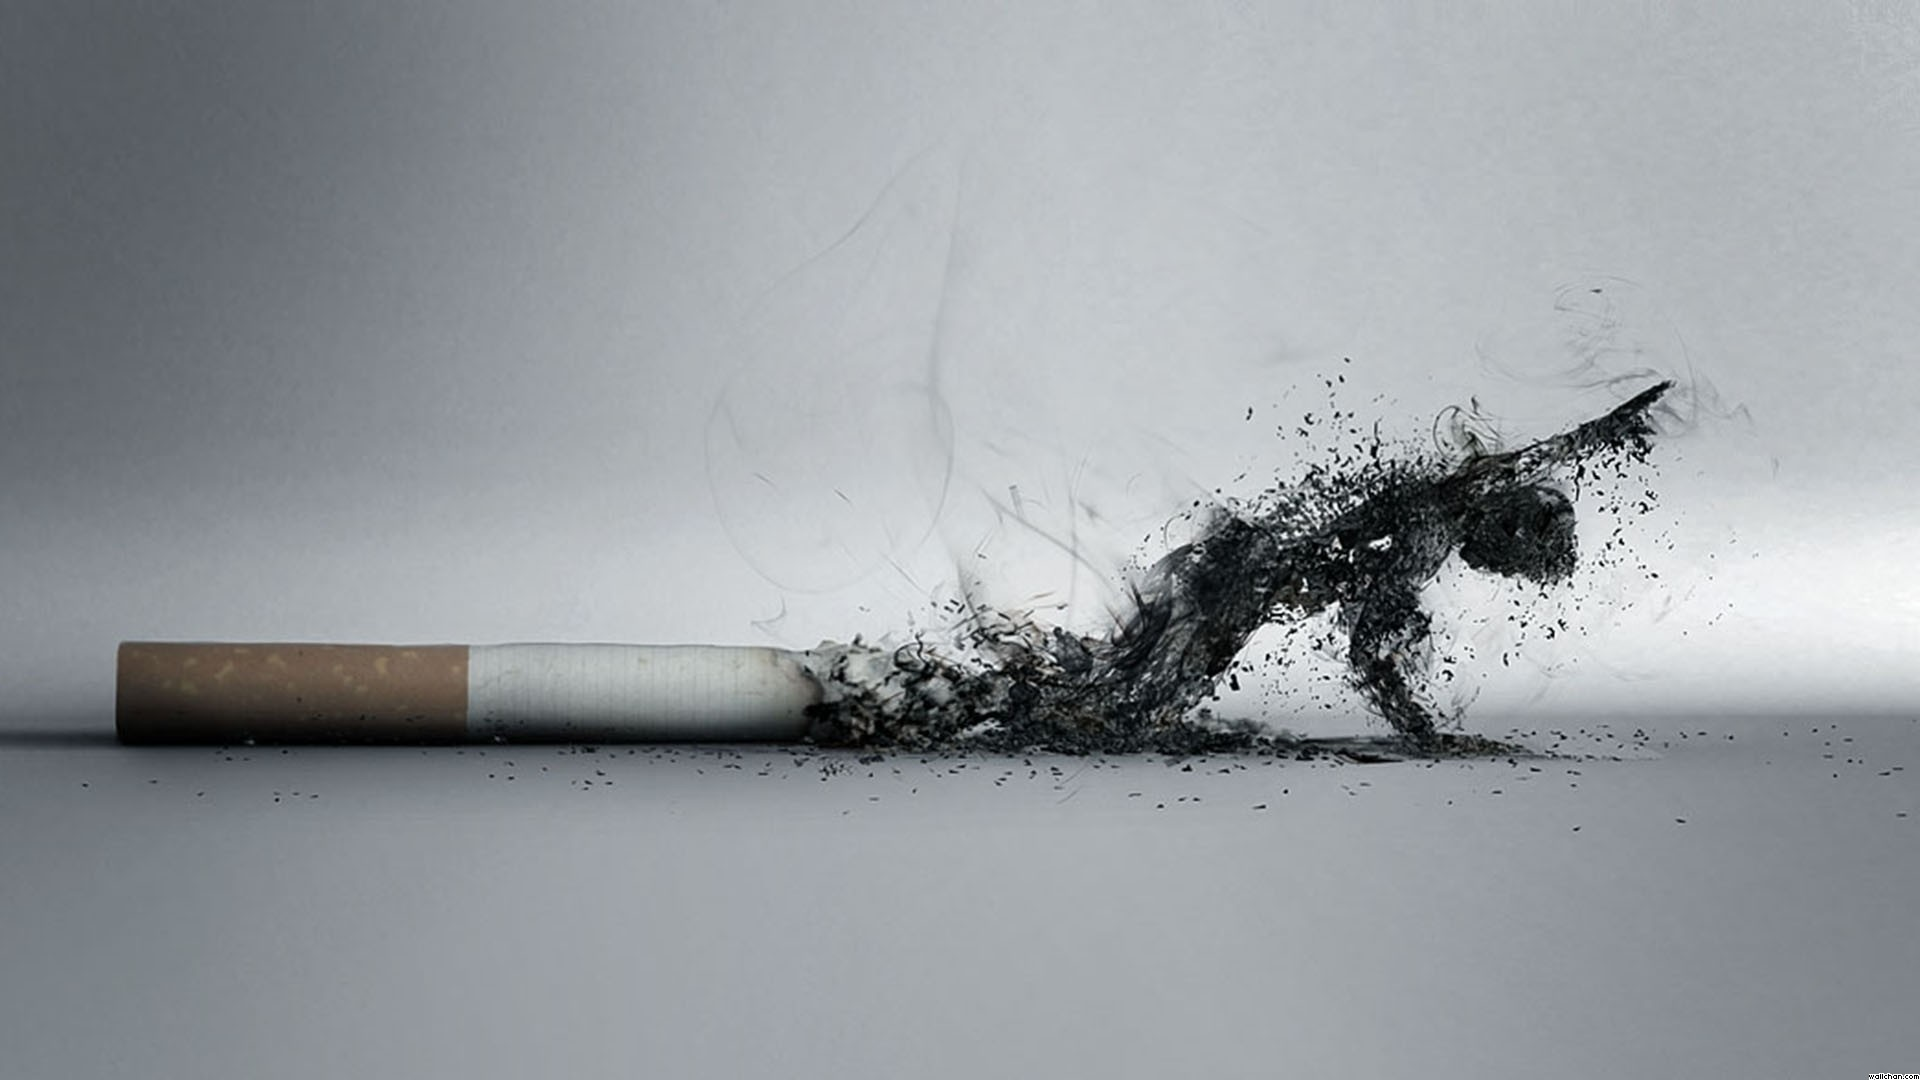 1920x1080 8 Hours quit-smoking-1